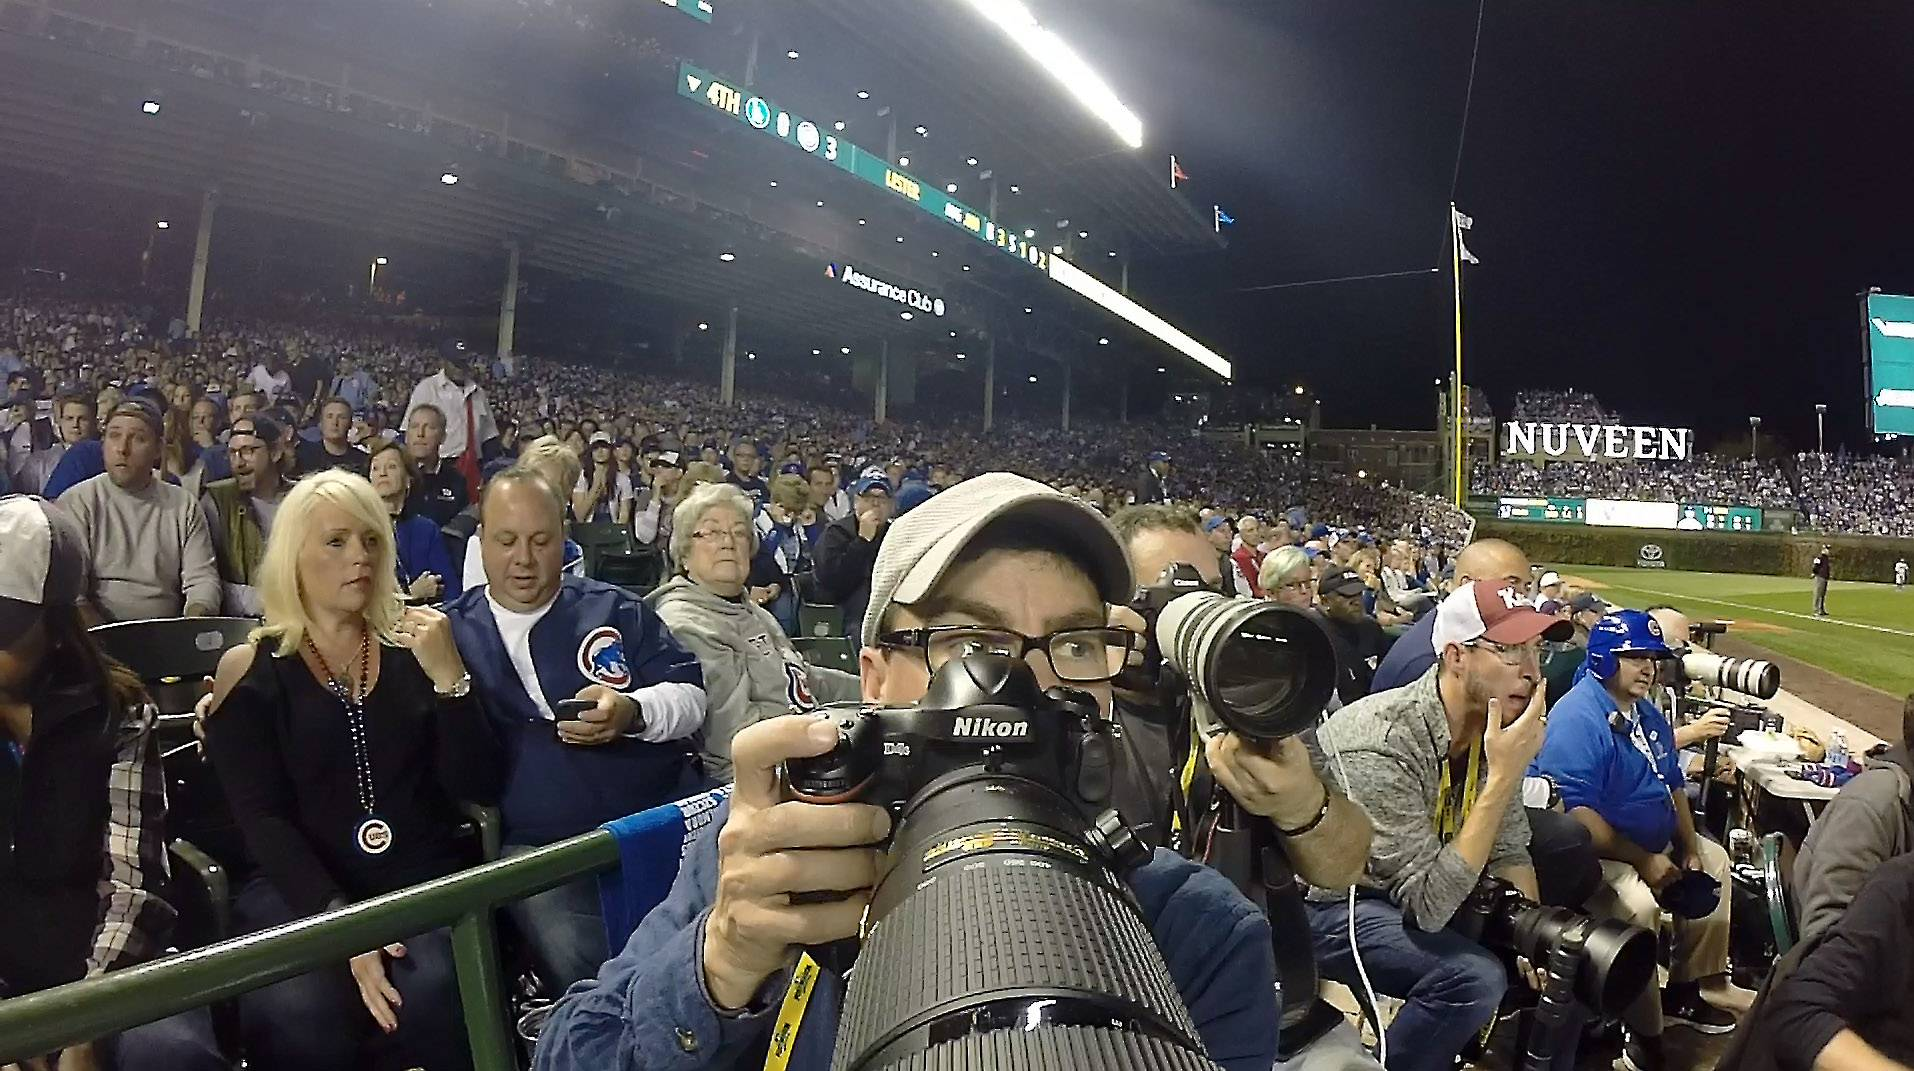 A look at Daily Herald photographer John Starks as he gets ready to shoot a picture during the National League championship series at Wrigley Field.